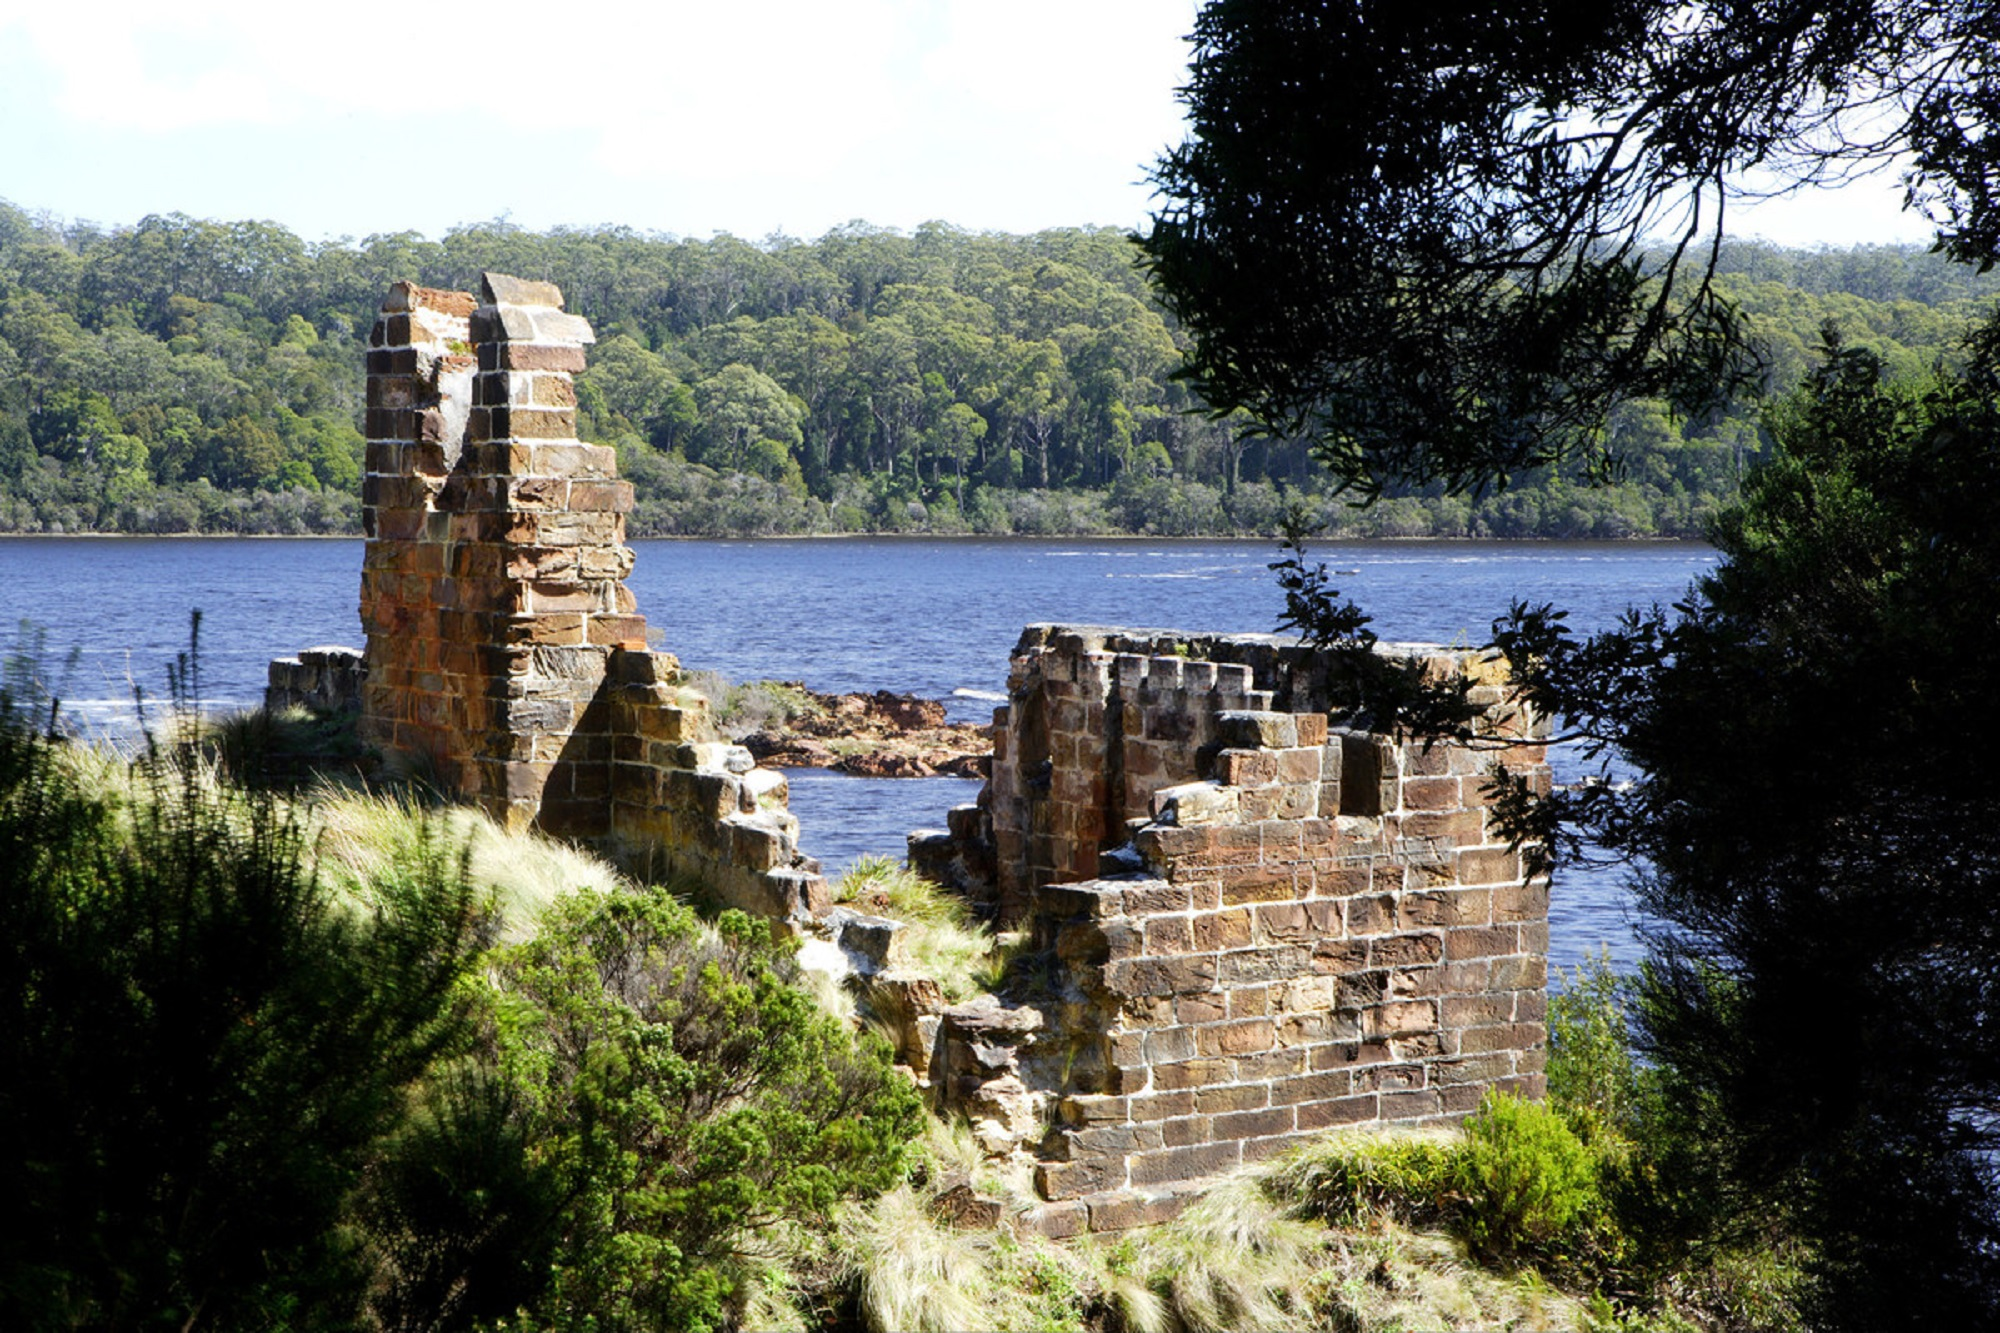 Image of the remains of an old brickk structure on the edge of Macquarie Harbour.